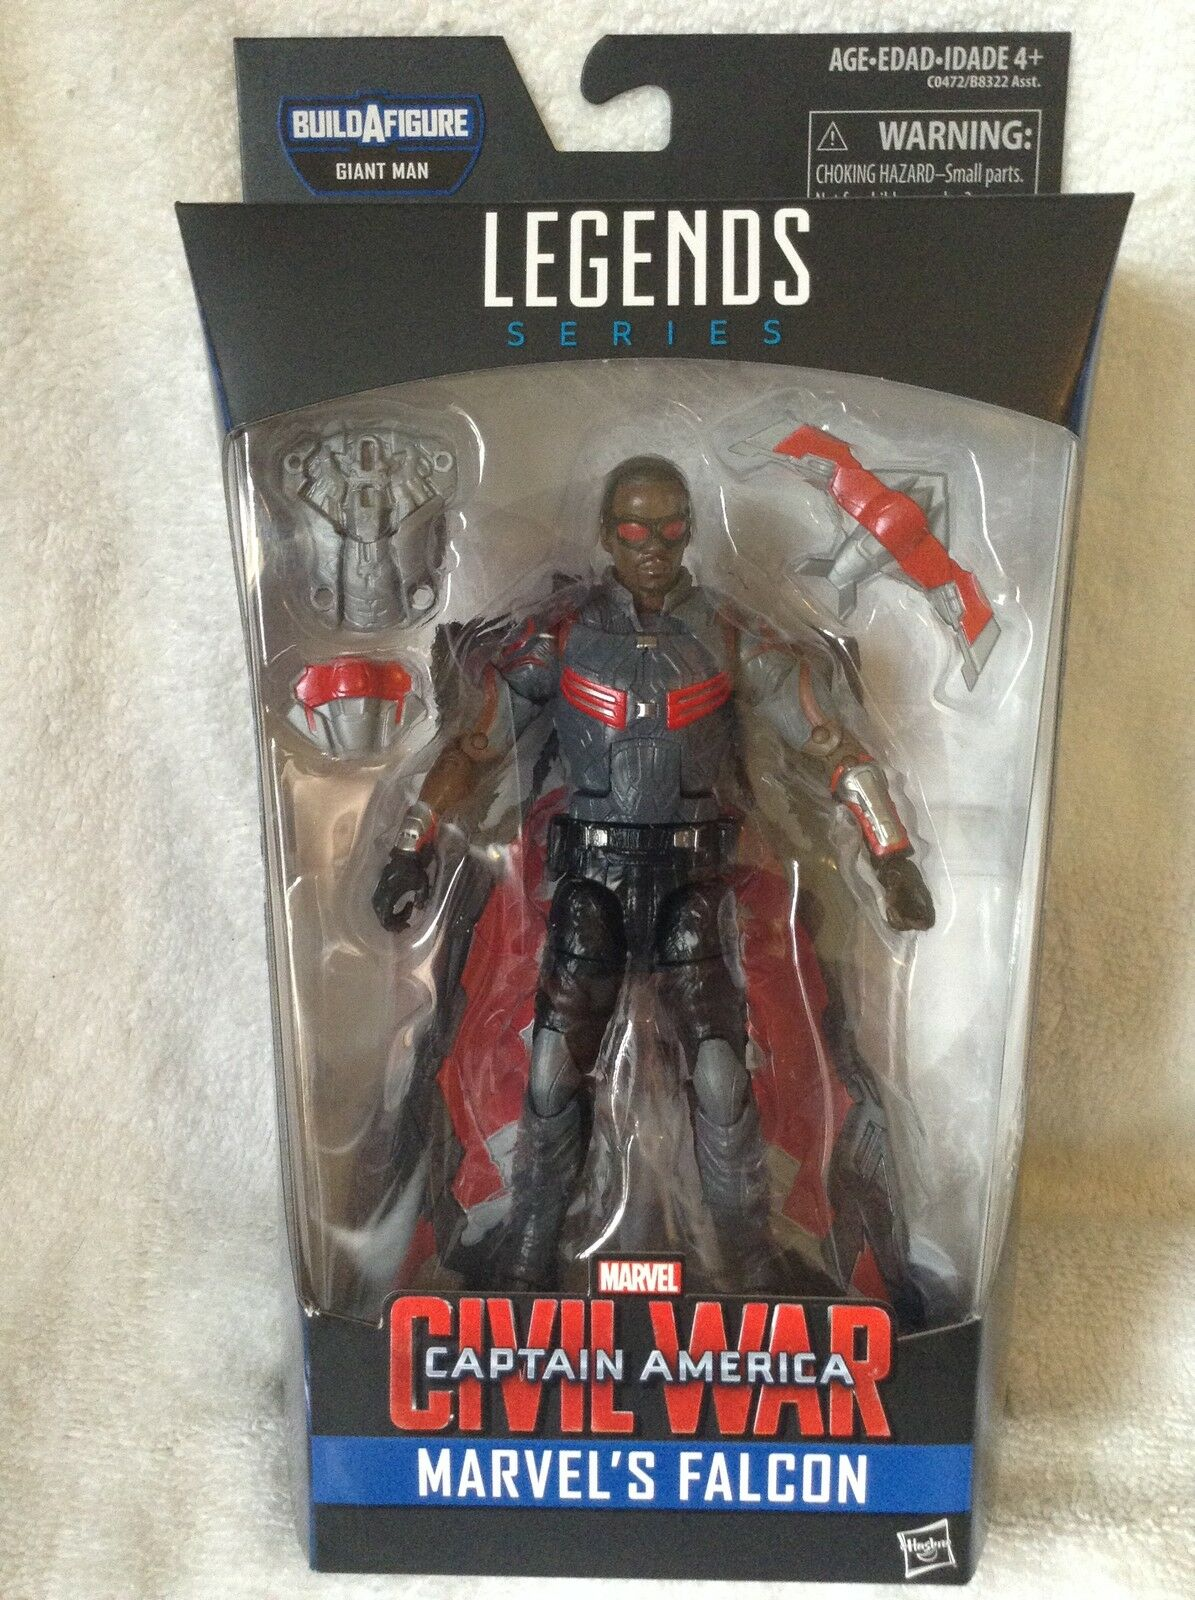 Marvel Legends Falcon BAF Giant Man Re-Release Captain America MIB  Exclusive